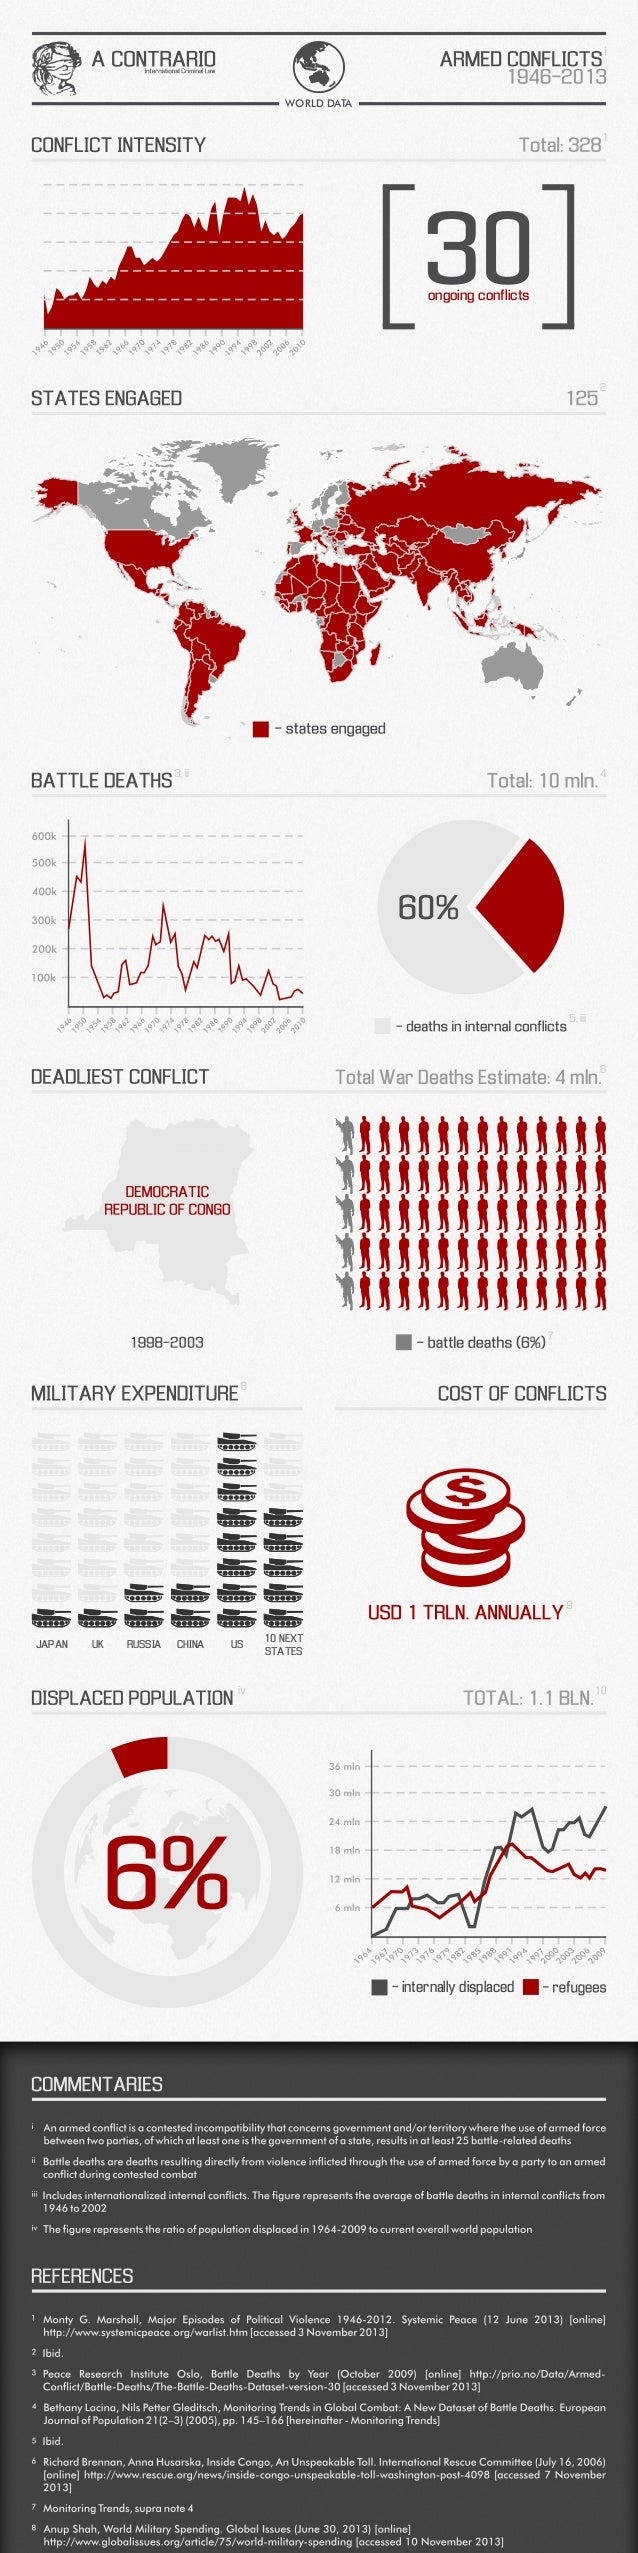 WORLD DATA 1  ongoing conflicts  2  4  , ii  , iii  6  Total War Deaths Estimate: 4 mln.  JAPAN  UK  RUSSIA  CHINA  US  10...